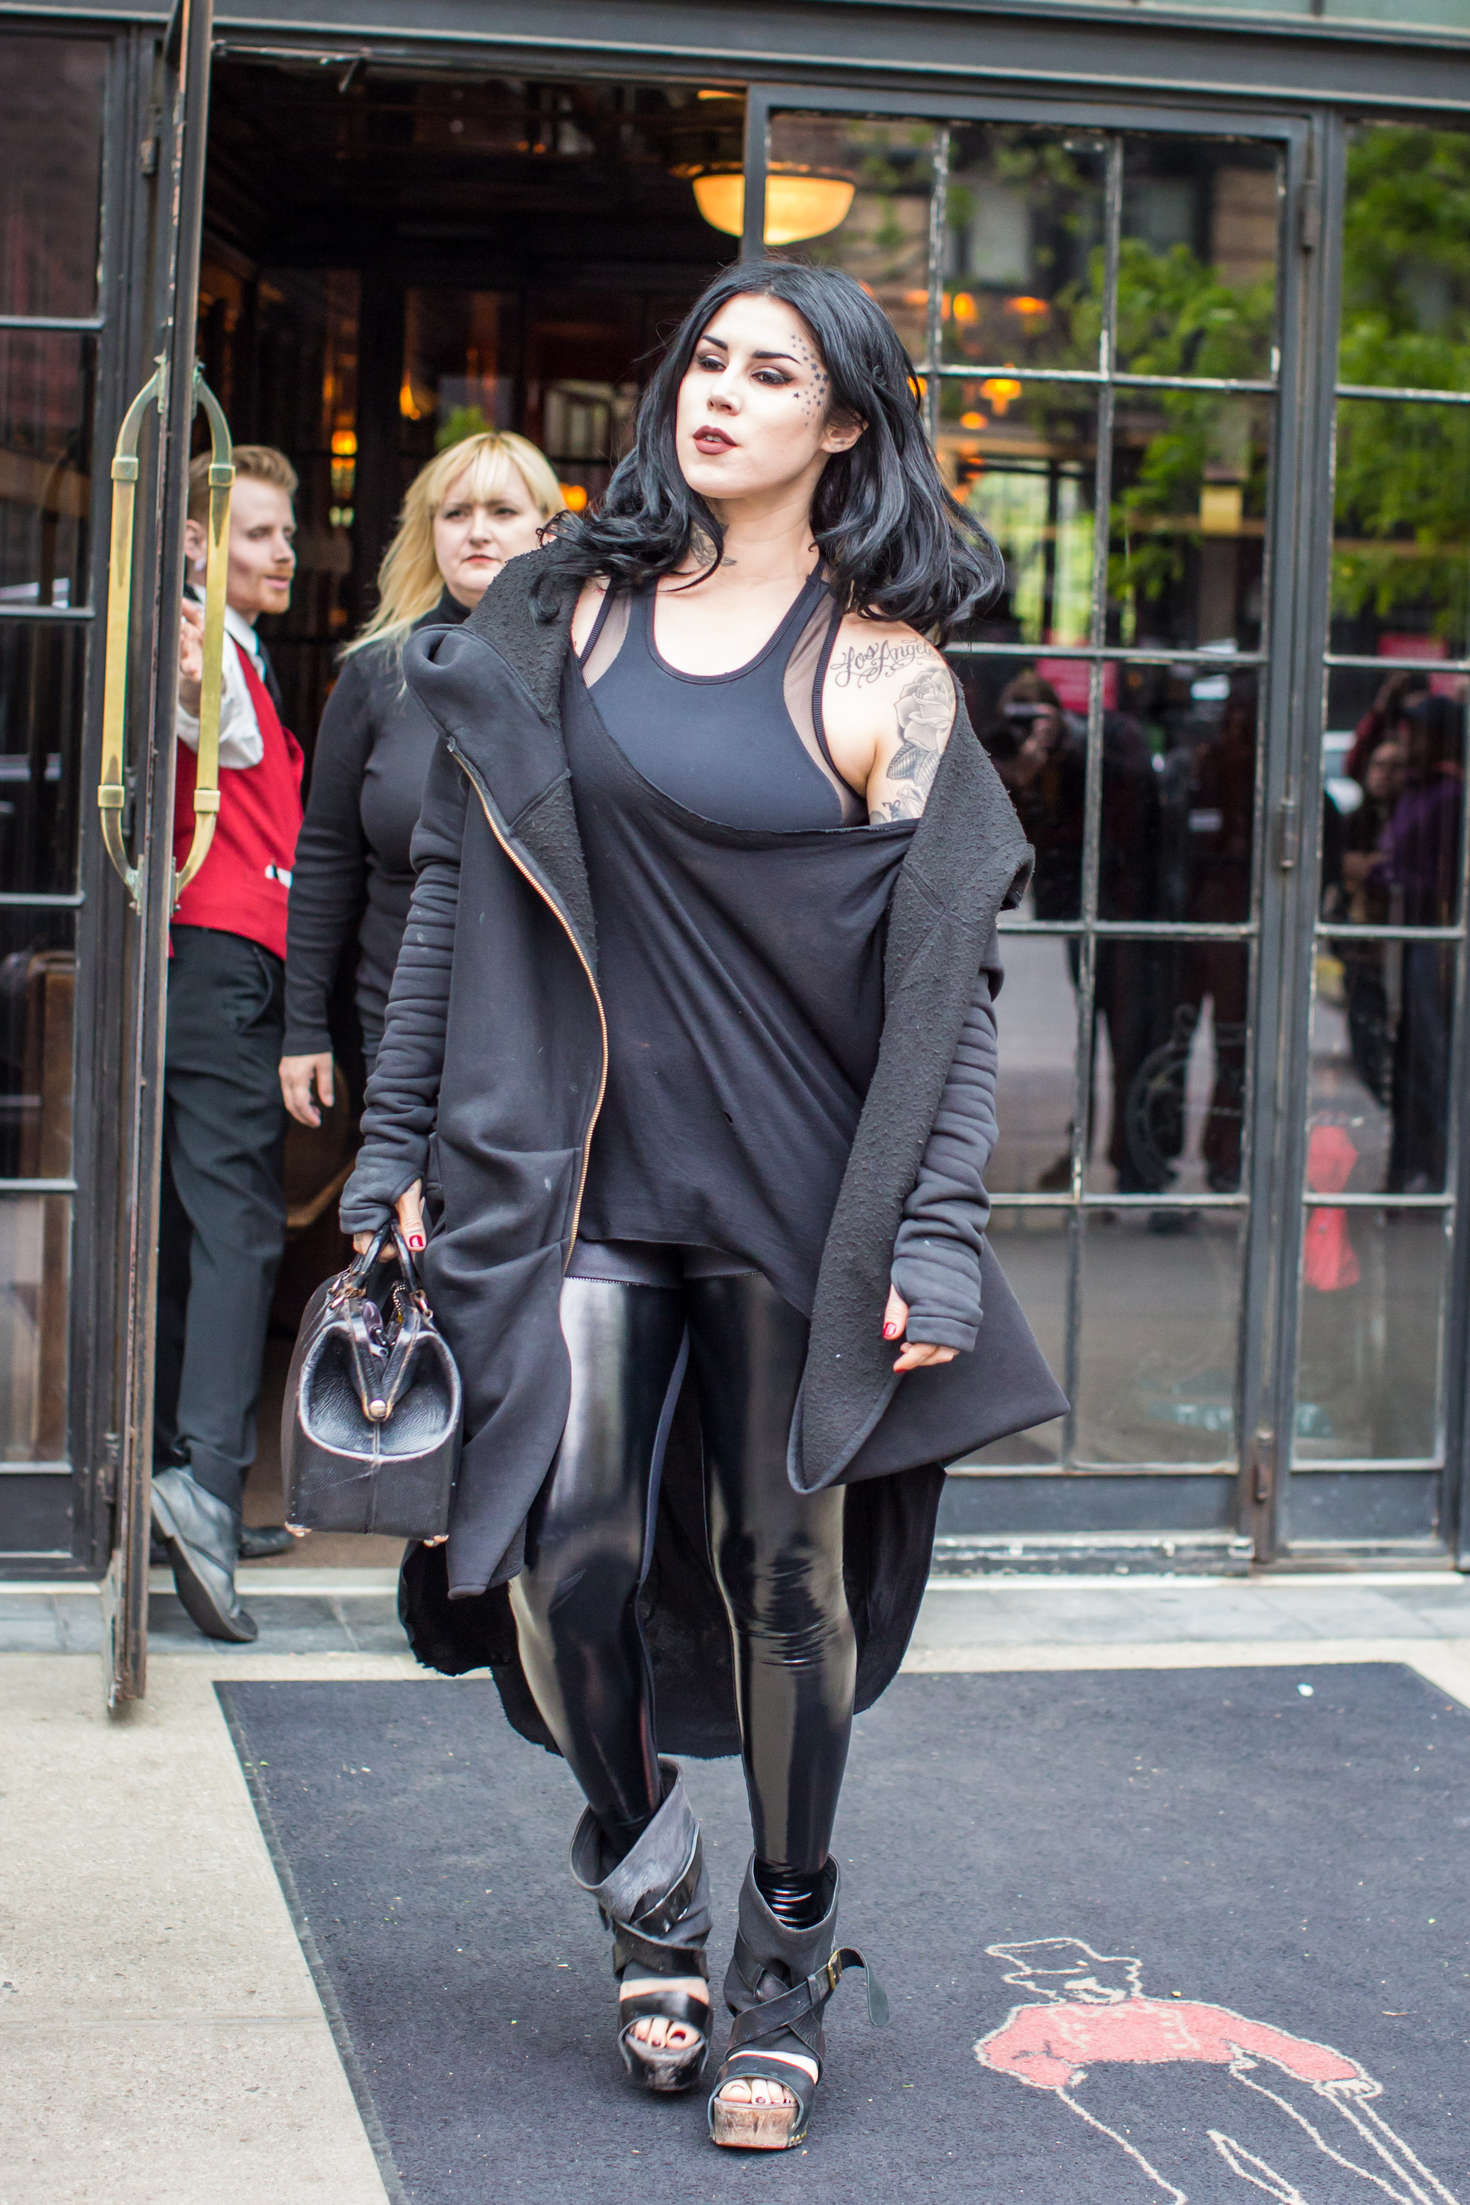 Kat Von D in Leather out in SoHo  GotCeleb